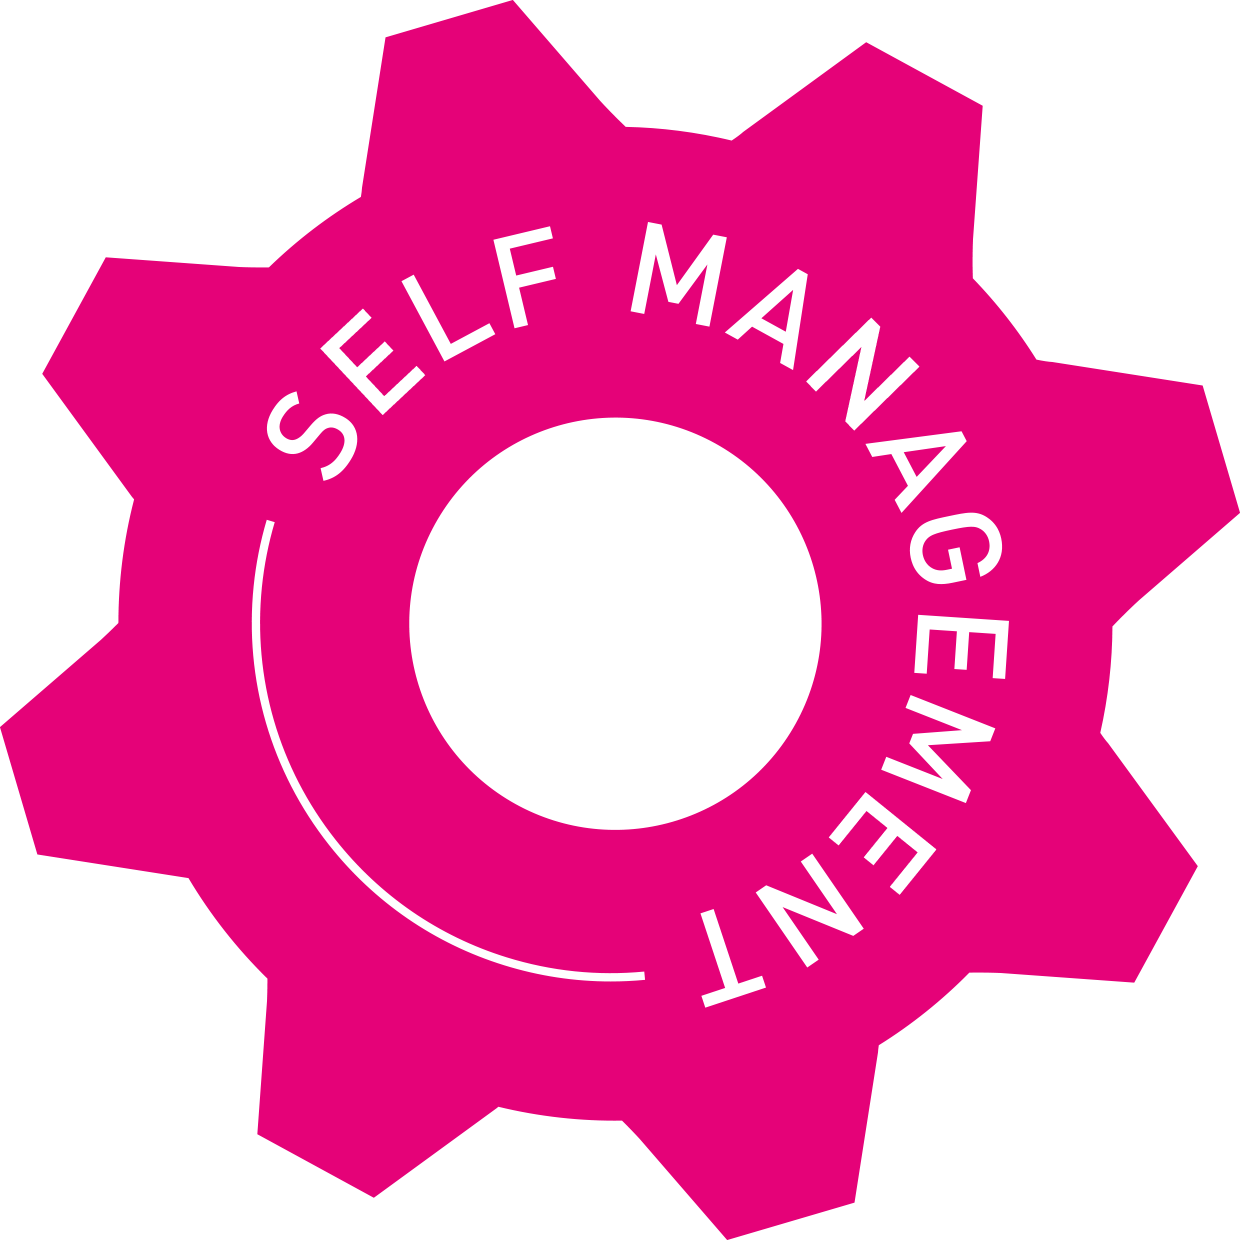 Copy of self management cog